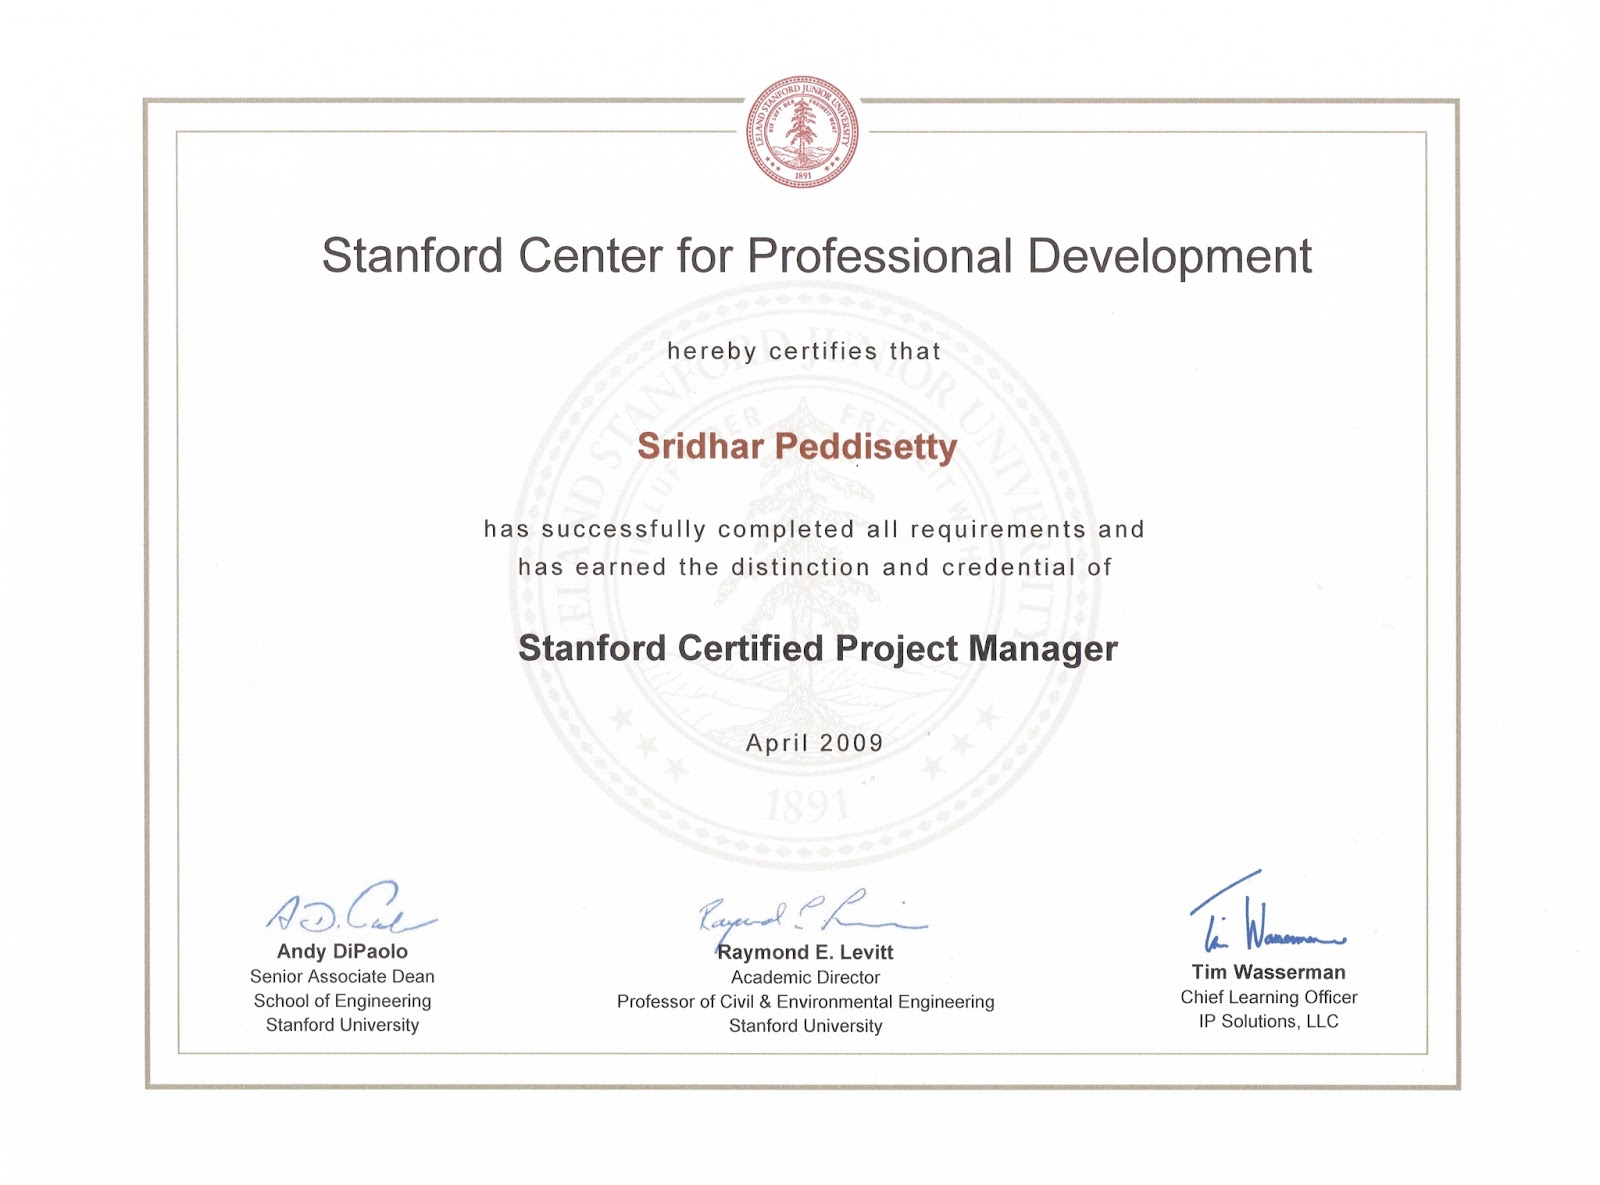 Sridhar Peddisettys Space Advanced Project Management Certificate